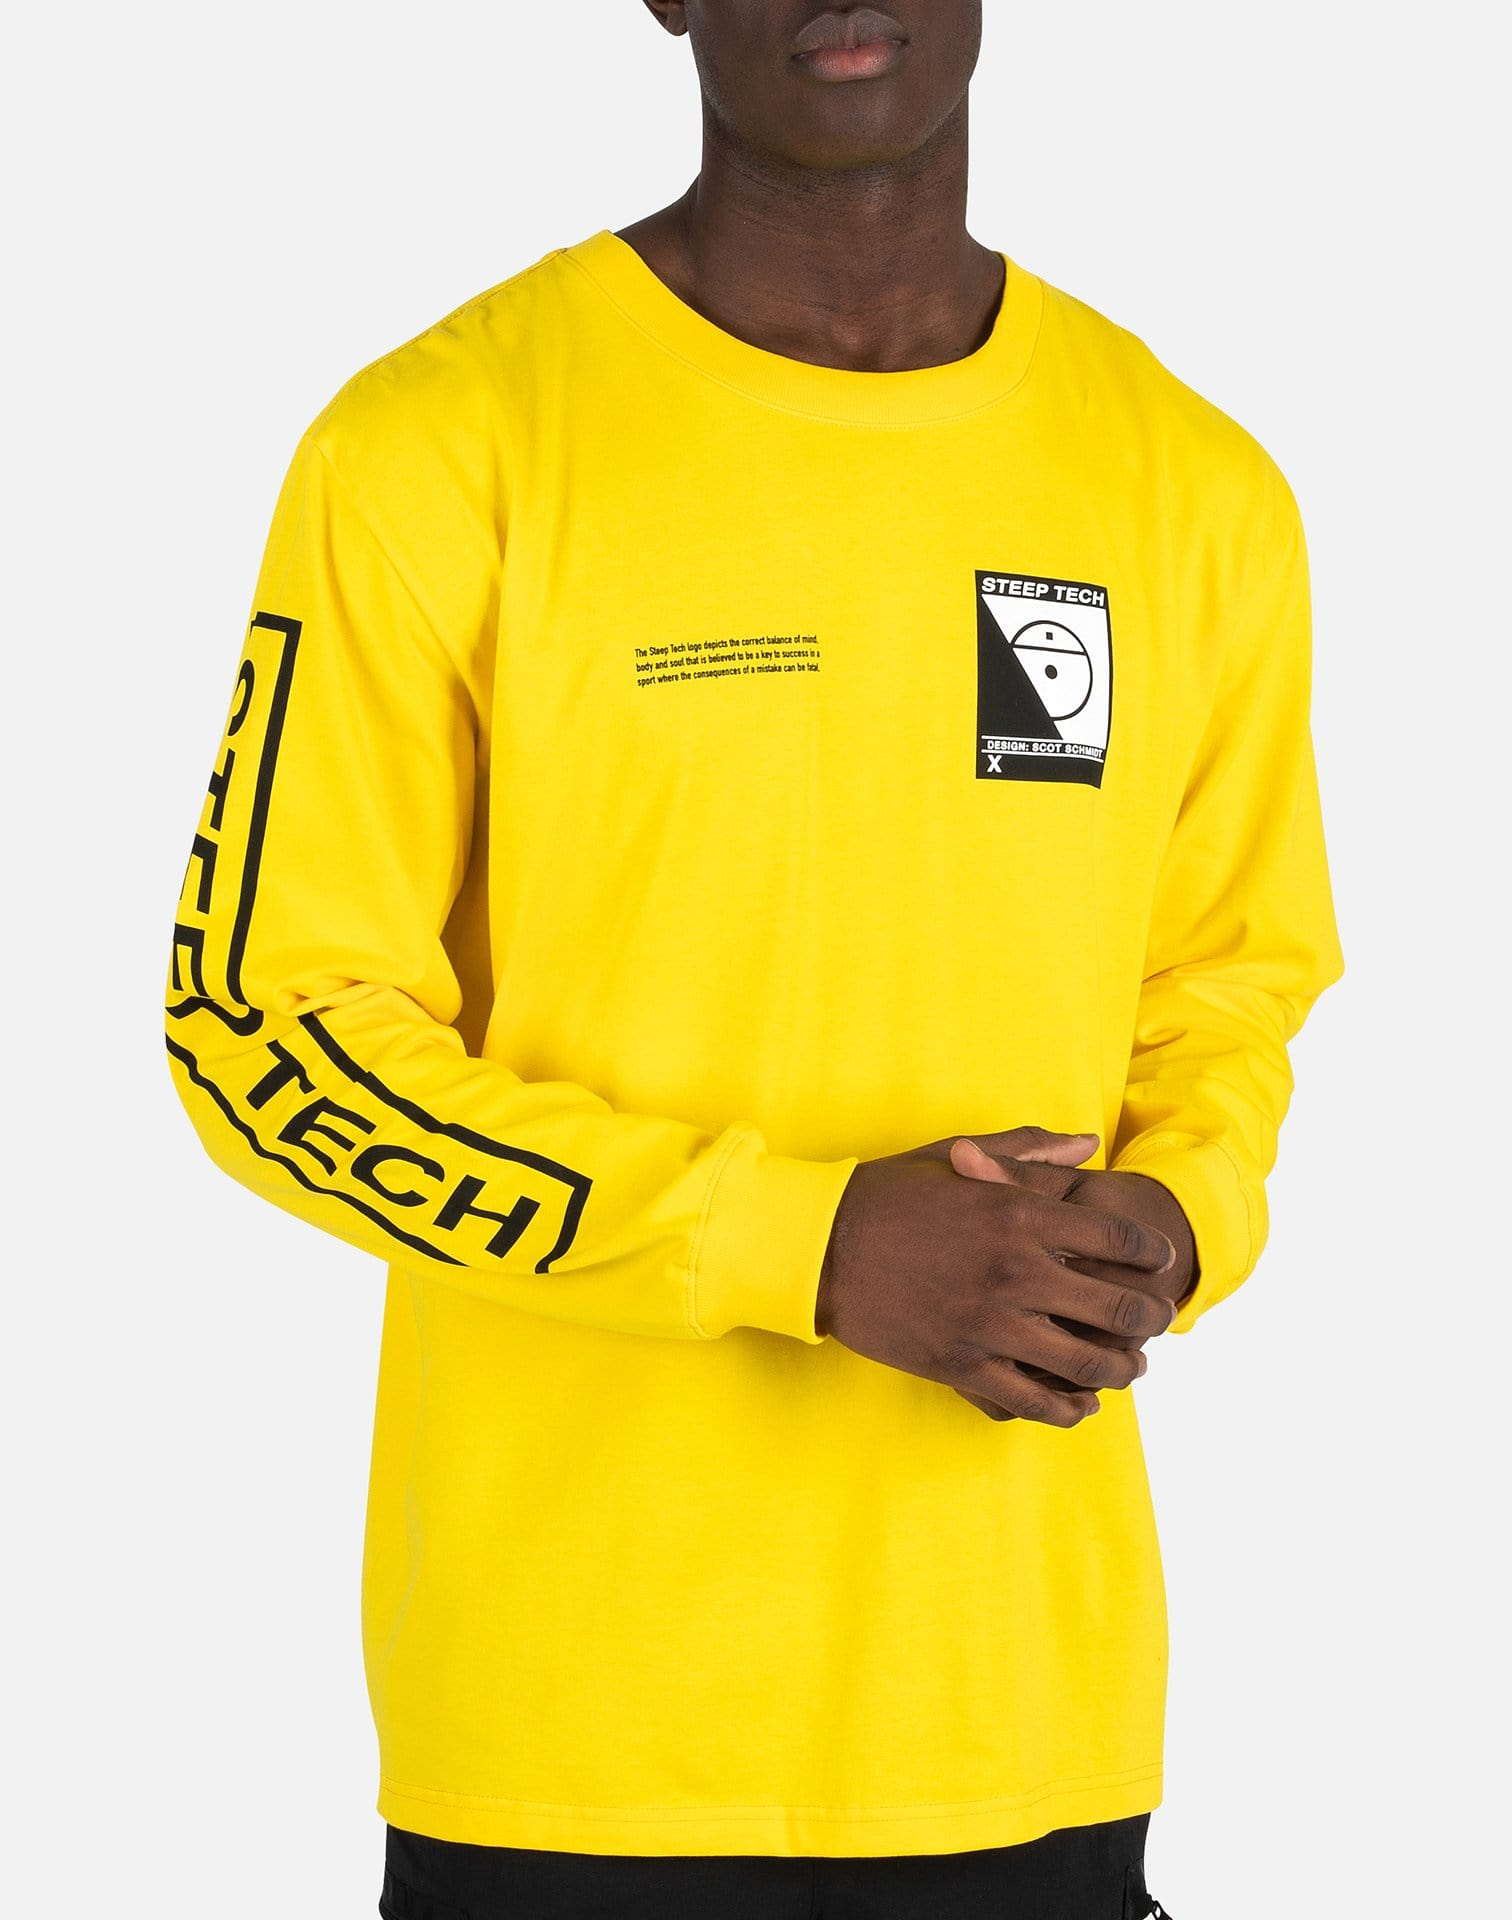 TheNorthFace STEEP TECH LONG-SLEEVE TEE